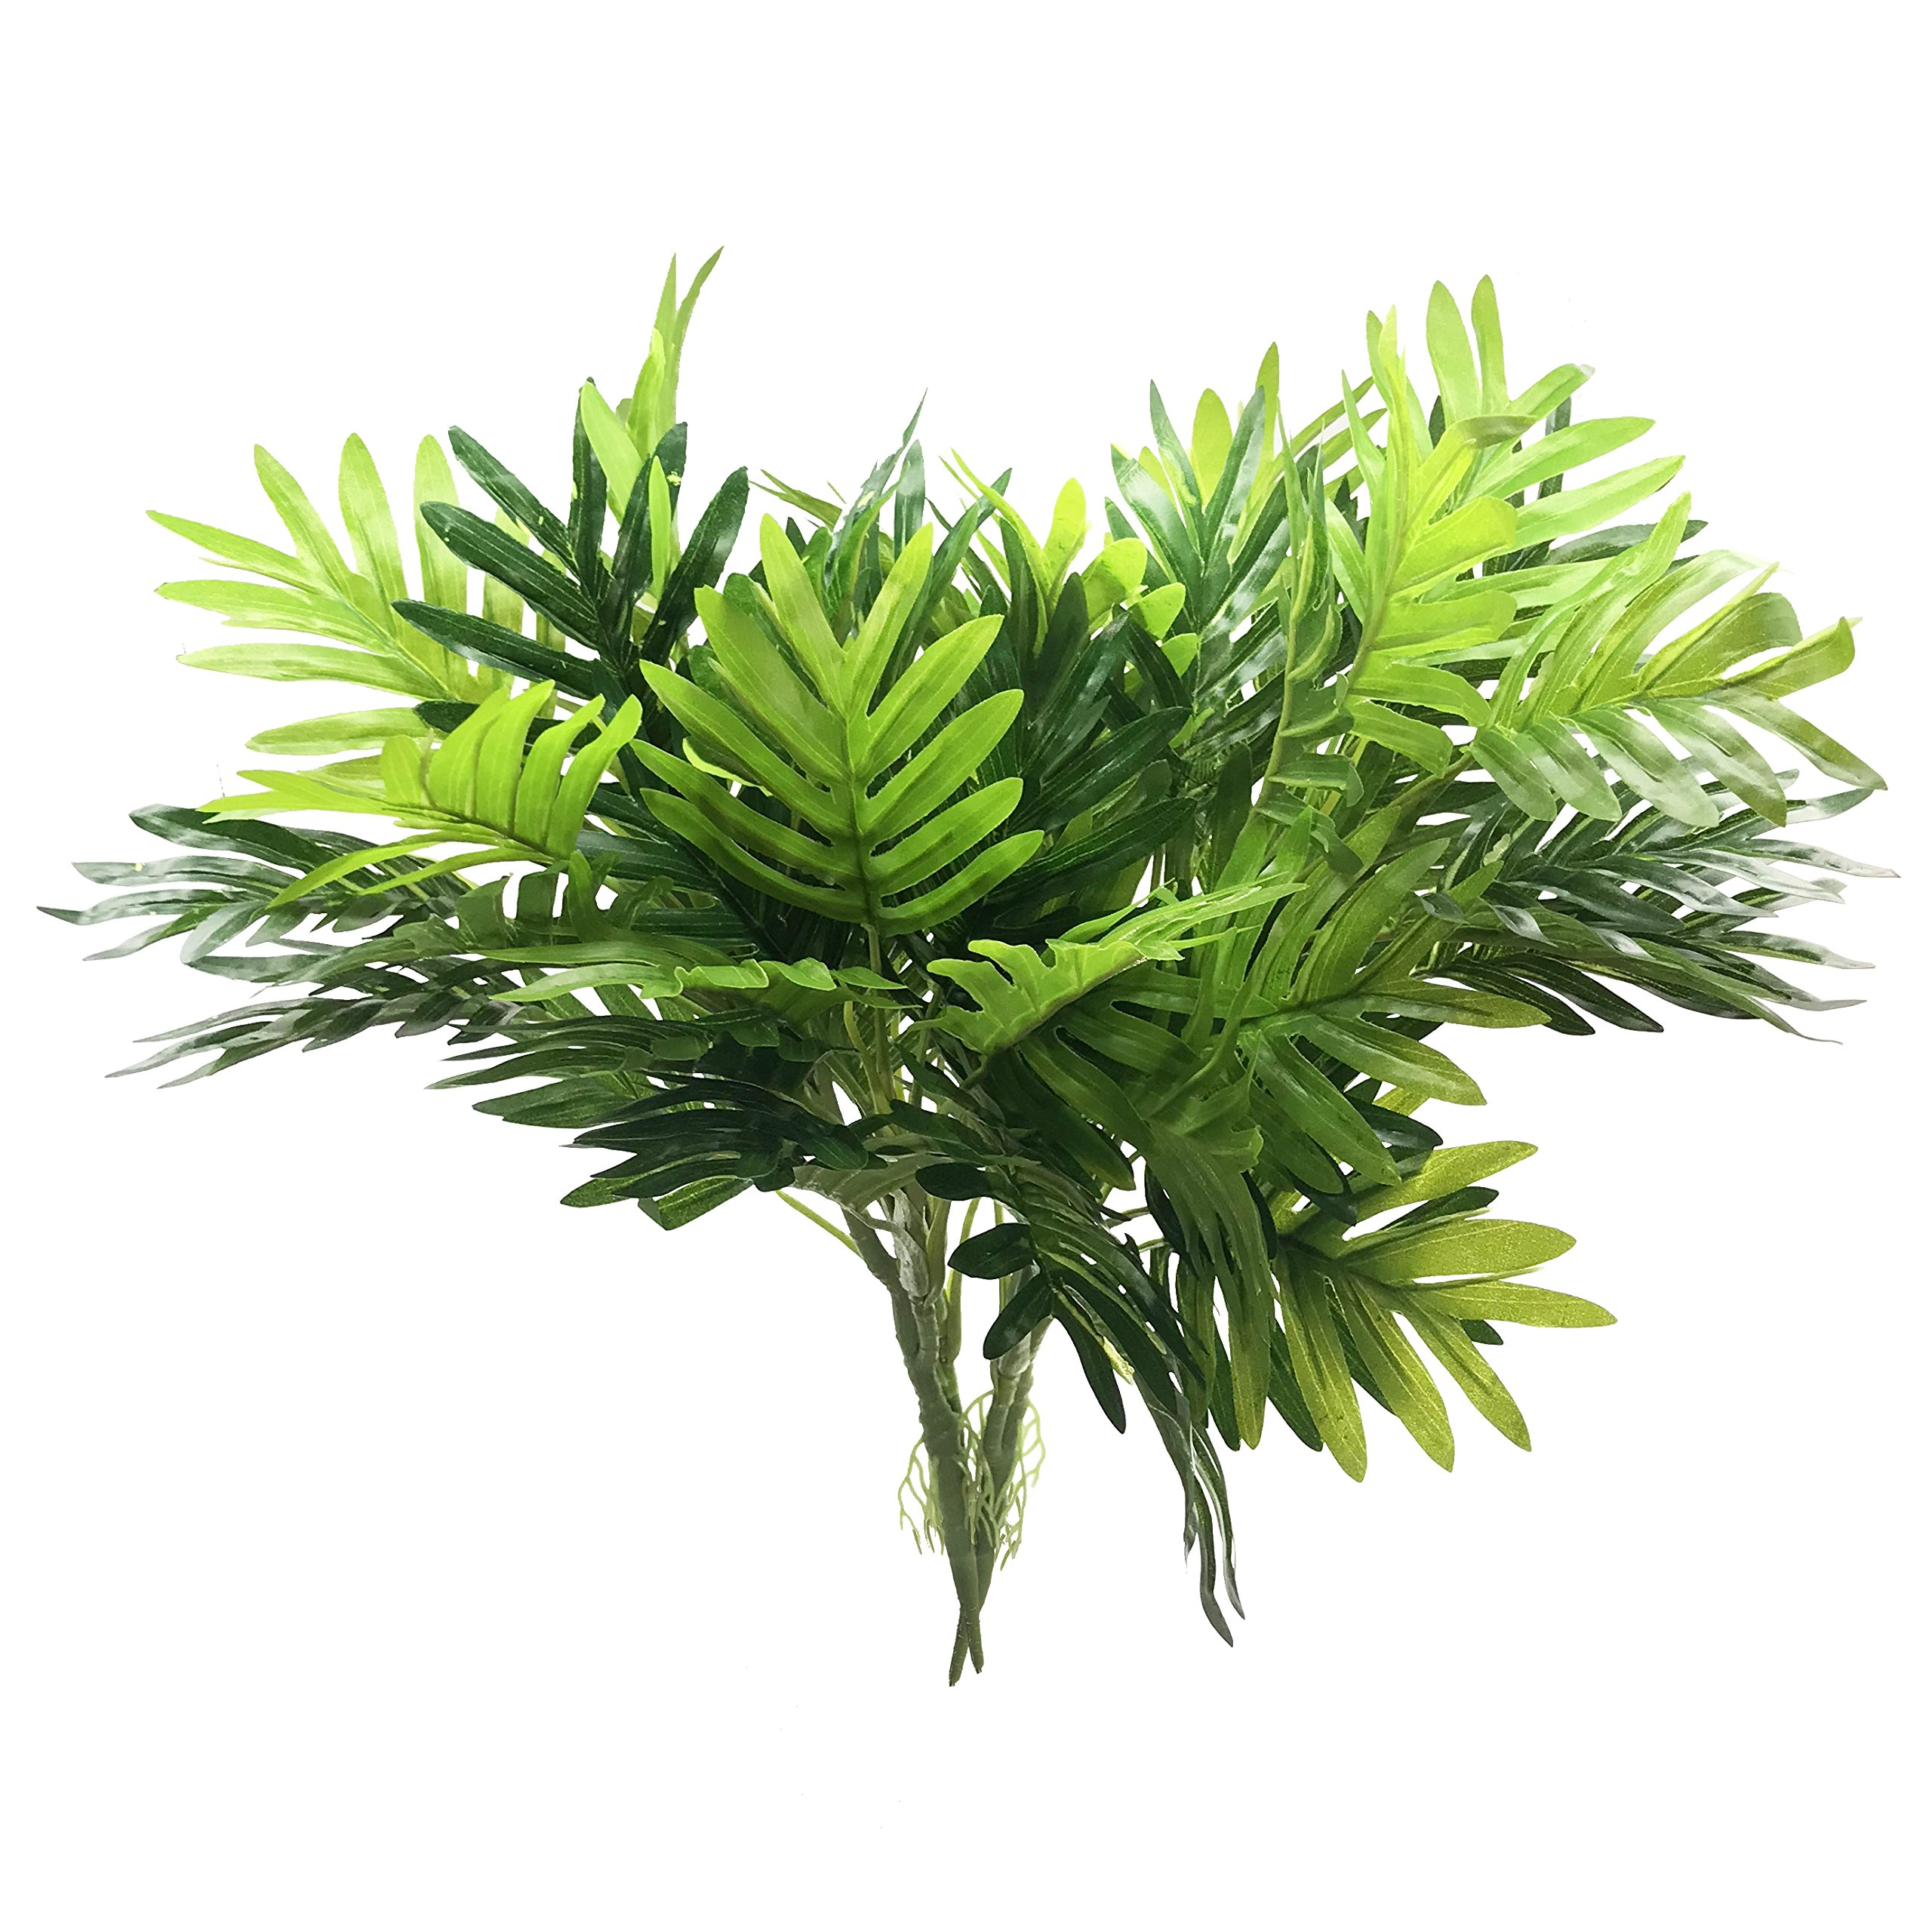 Artificial Plants Palm Tree Faux Palm Plant Leaves Greenery Tree for Fake Simulation Greenery Plants Indoor Outside Home Garden Office Home Wedding Decoration - 2 PCS